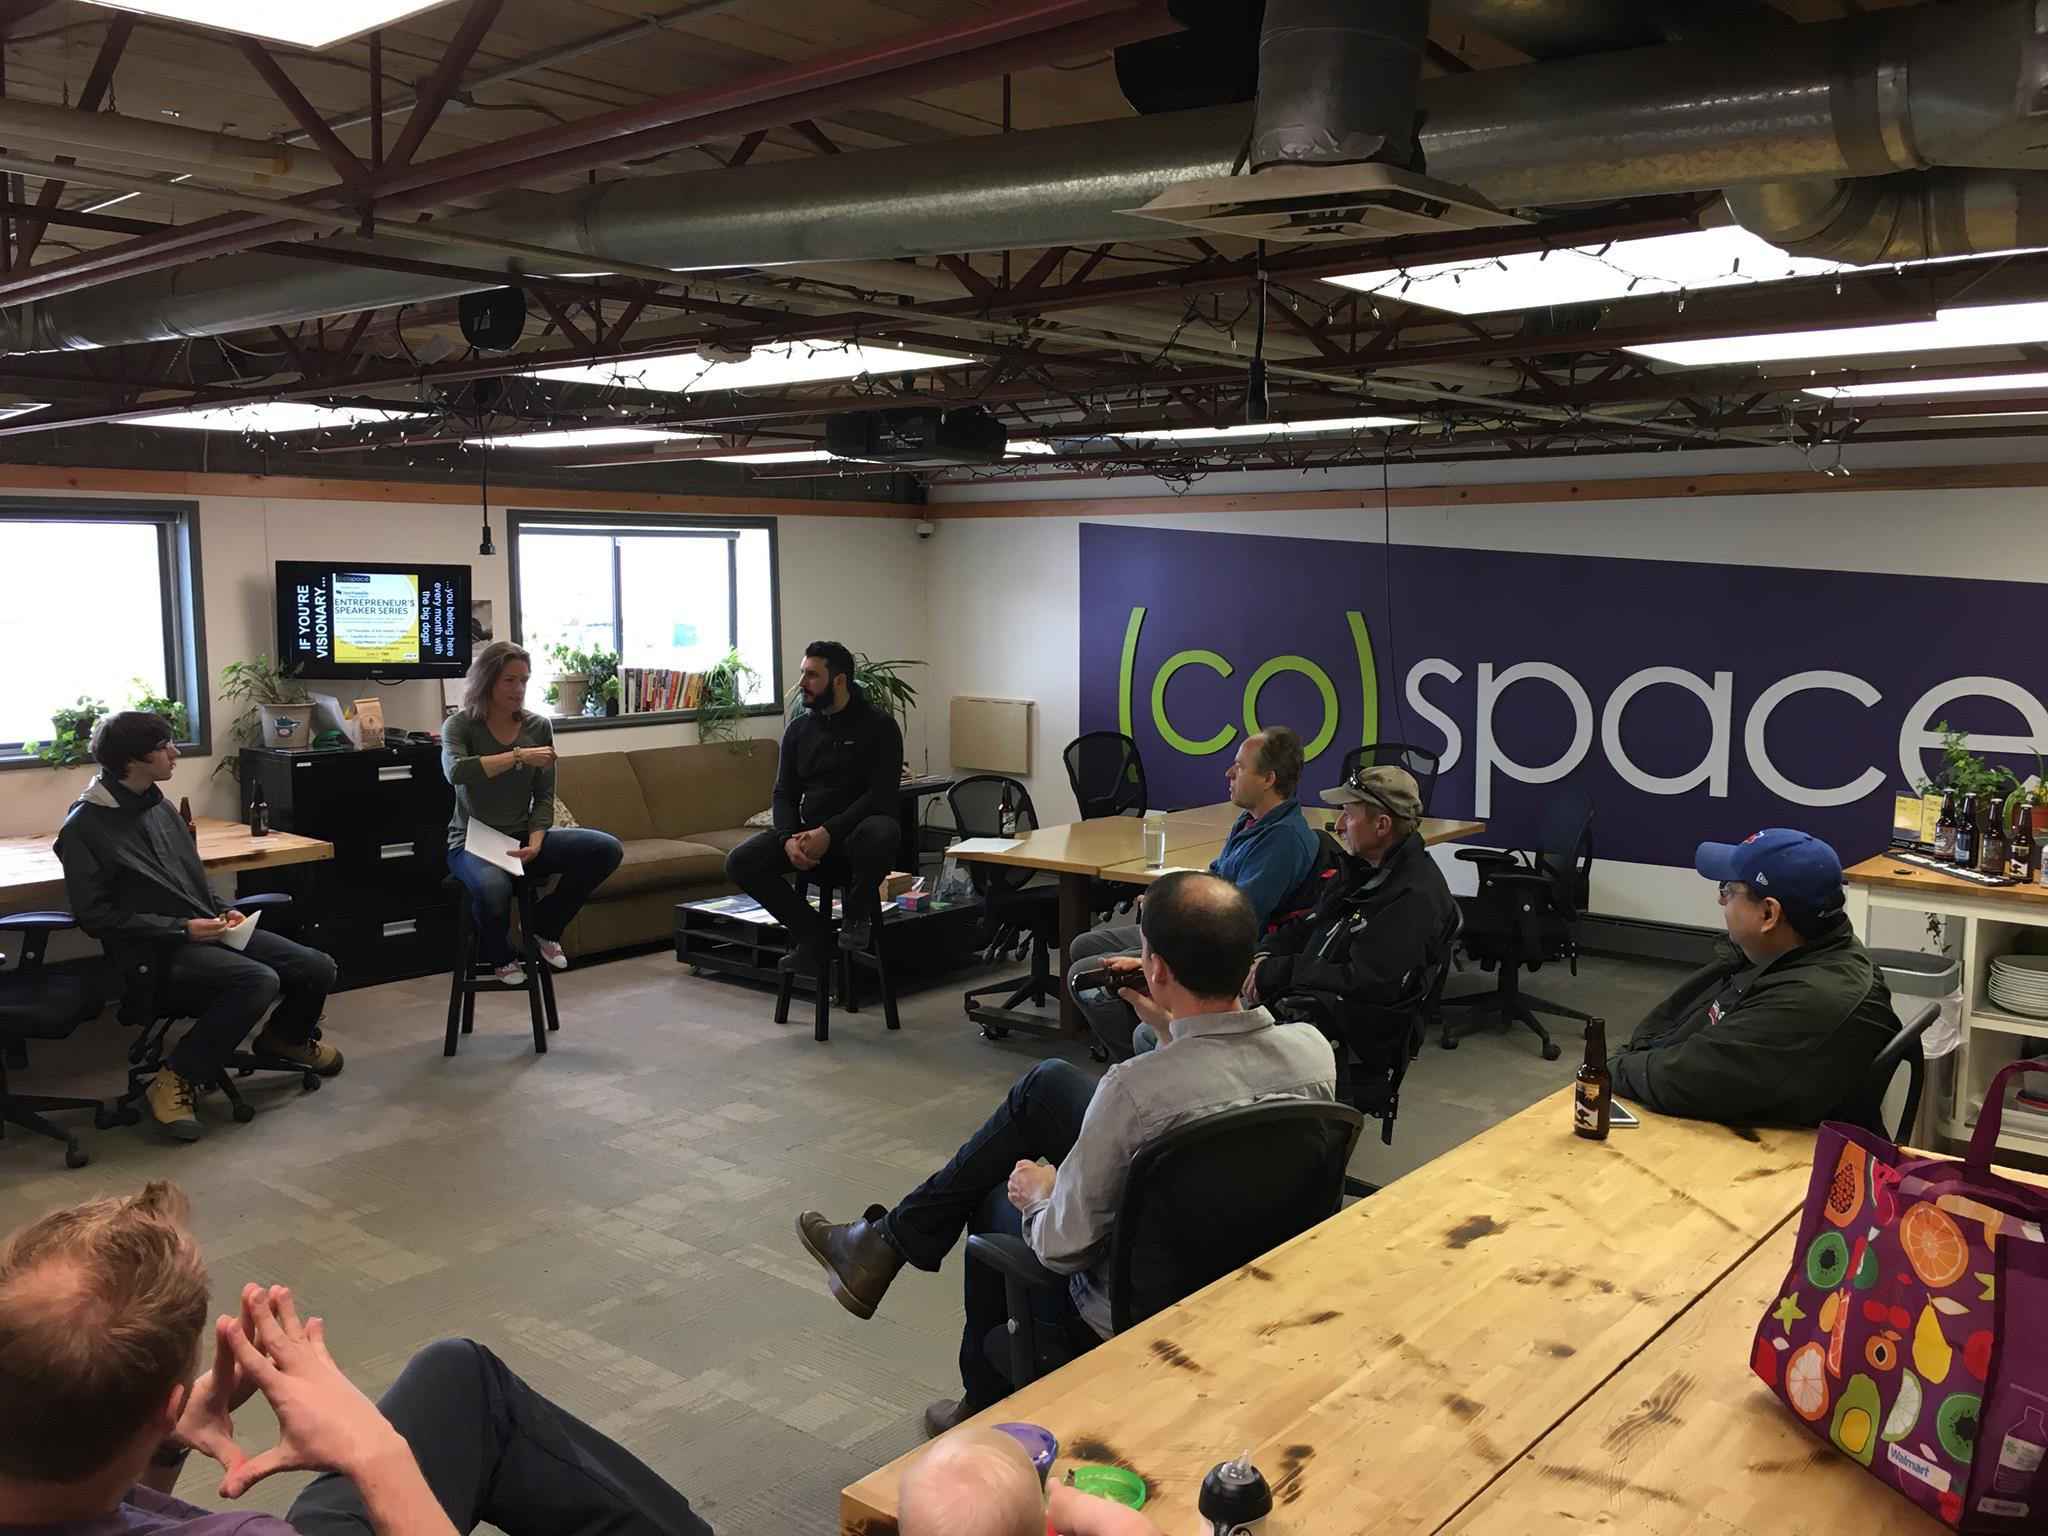 YUKONSTRUCT MAKERSPACE SOCIETY LAUNCHED (CO)SPACE, A RALLYING POINT FOR GROWING THE YUKON'S ENTREPRENEURIAL COMMUNITY